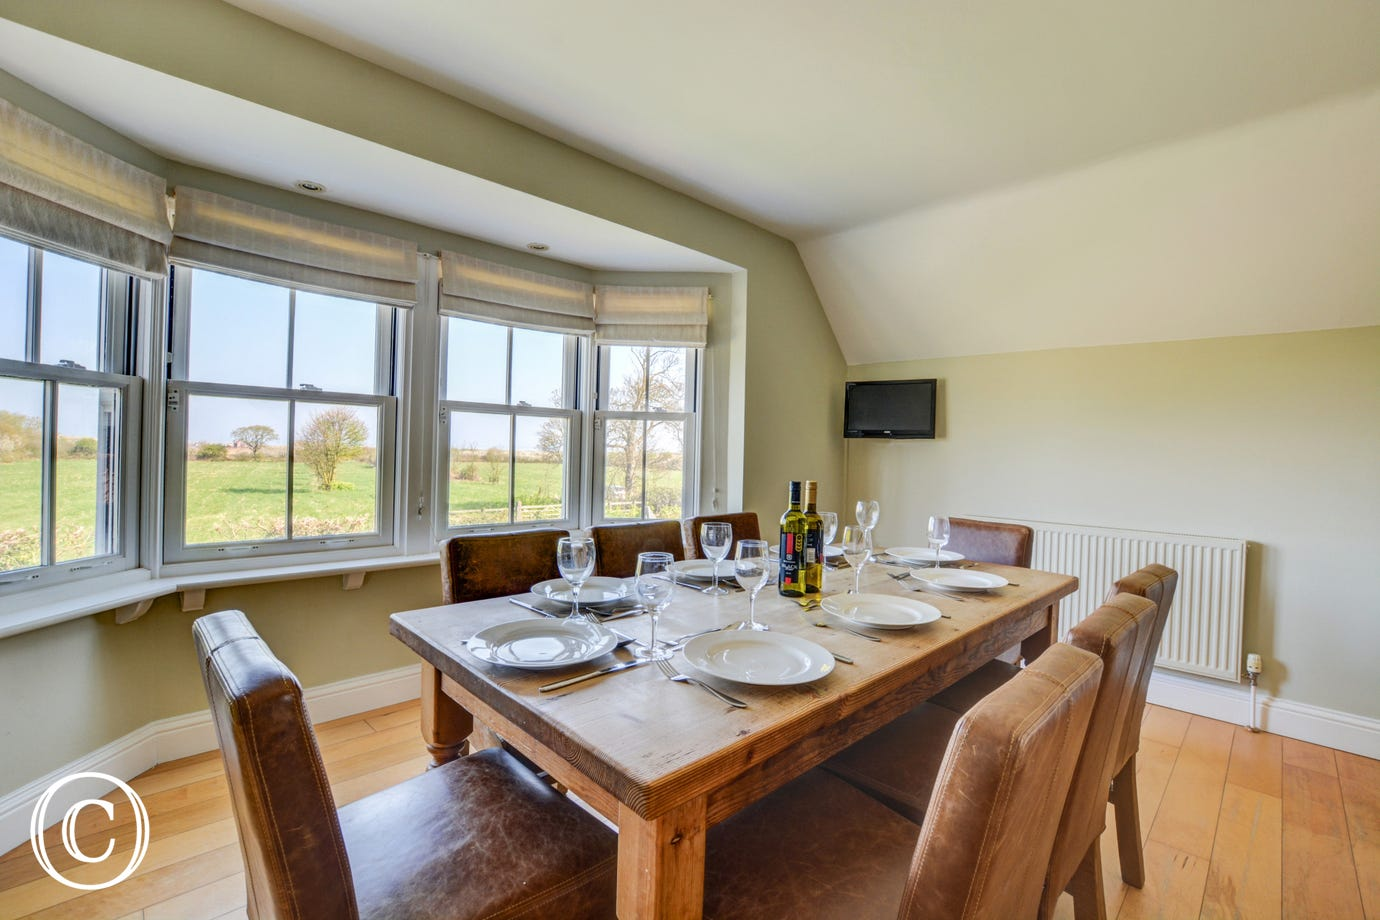 Light and airy dining area with table and chairs to seat 8 and great views from the bay window, perfect for family meals